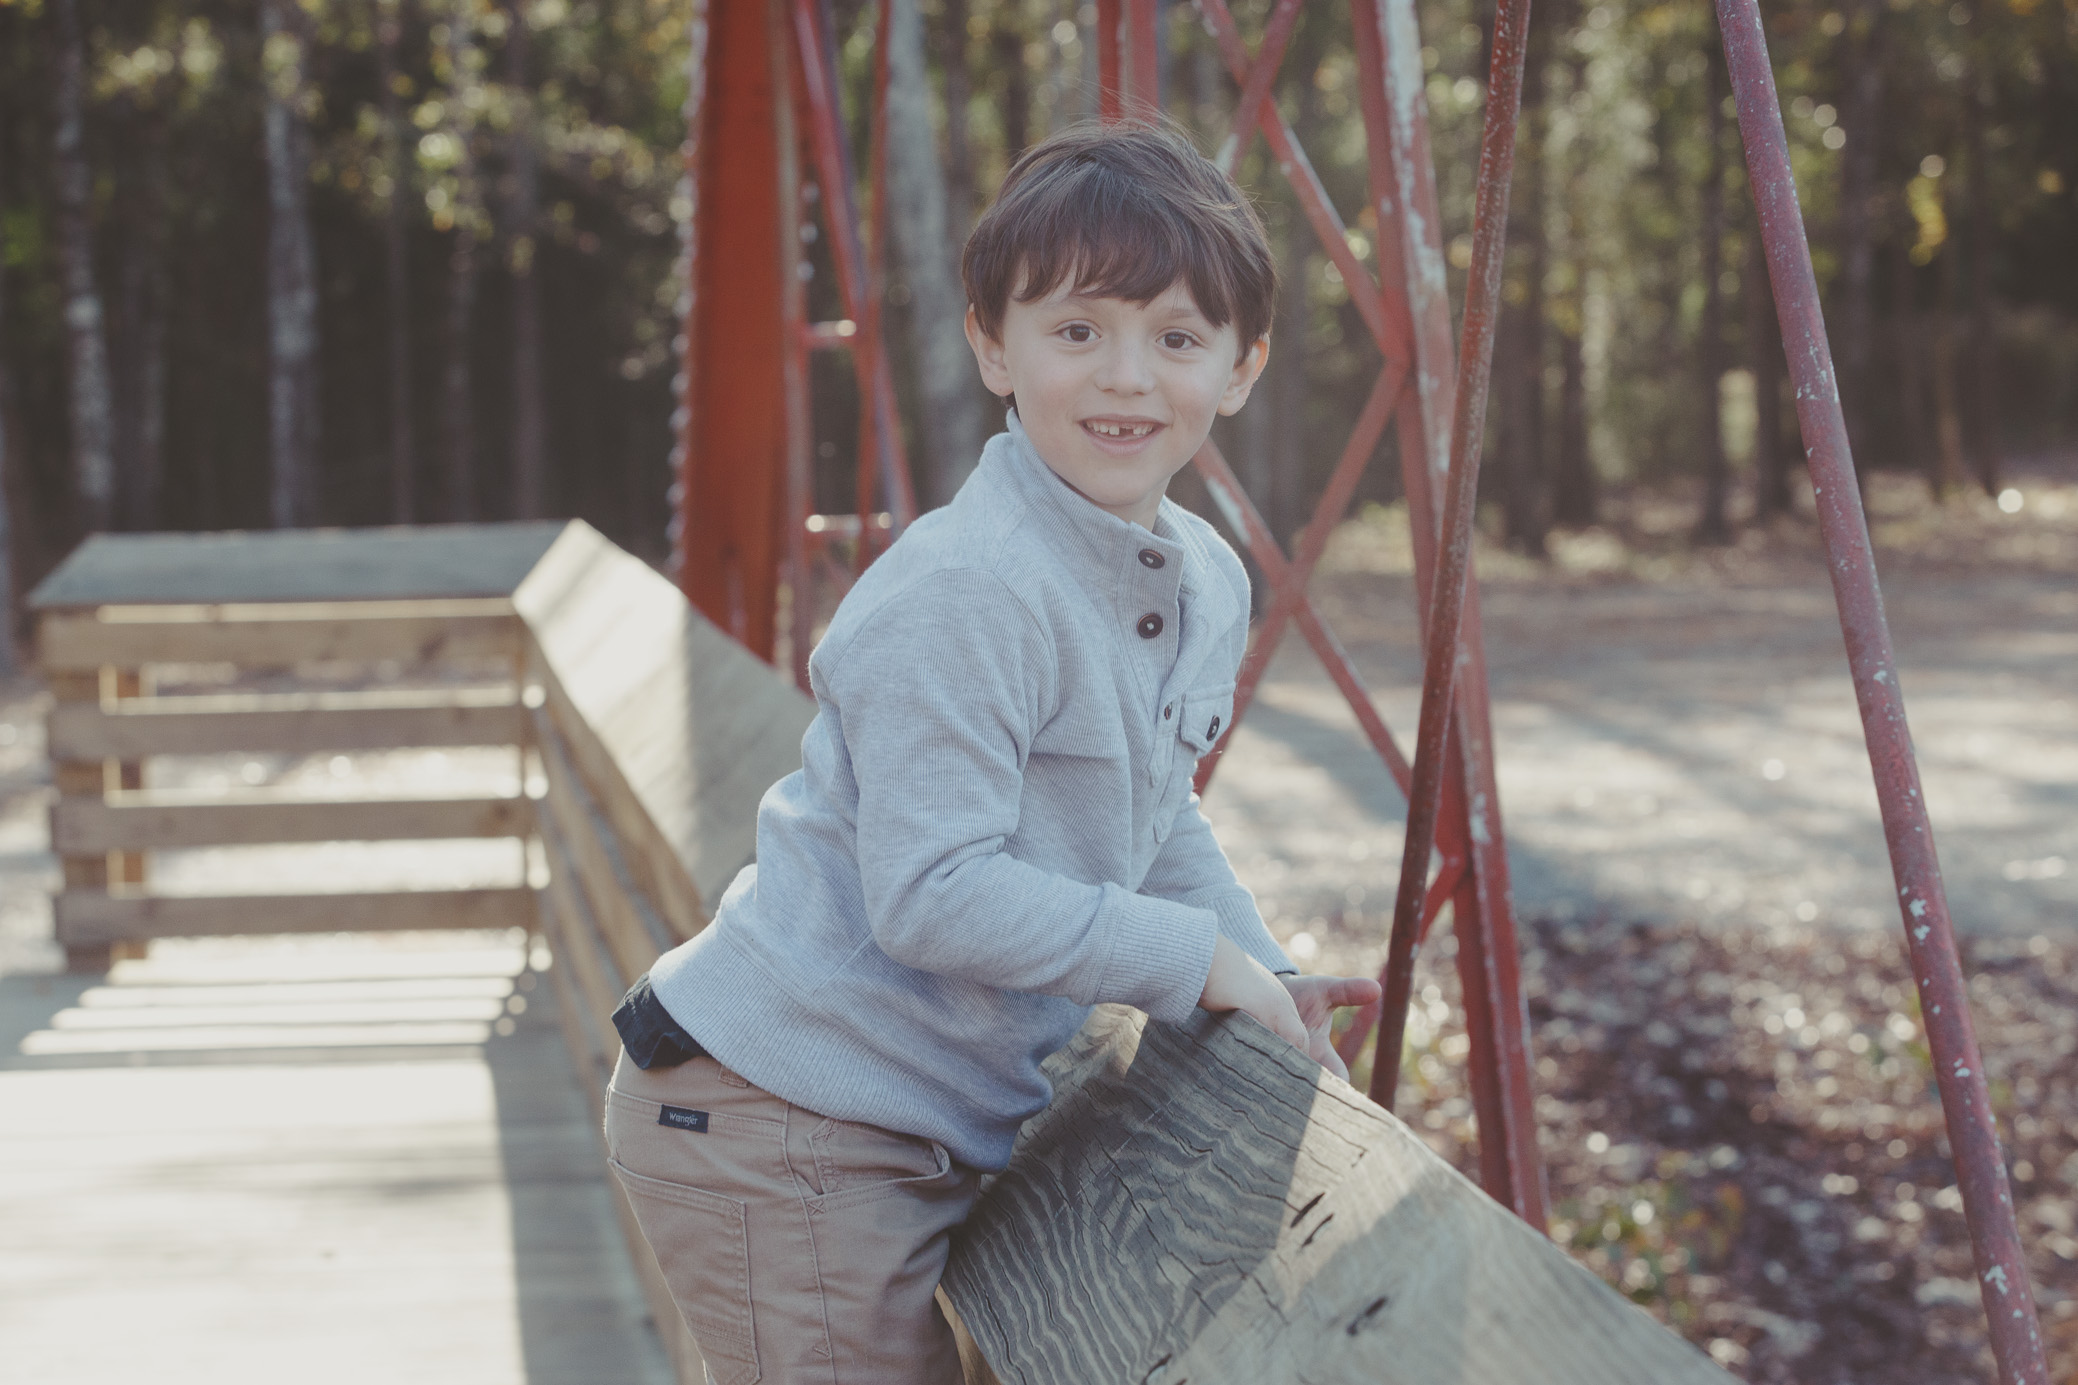 Family portrait photography for the Myers family at the Van de Graff Arboretum in the Northport/Tuscaloosa, Alabama area on November 19th, 2017 by David A. Smith of DSmithImages Wedding Photography, Portraits, and Events in the Birmingham, Alabama area.